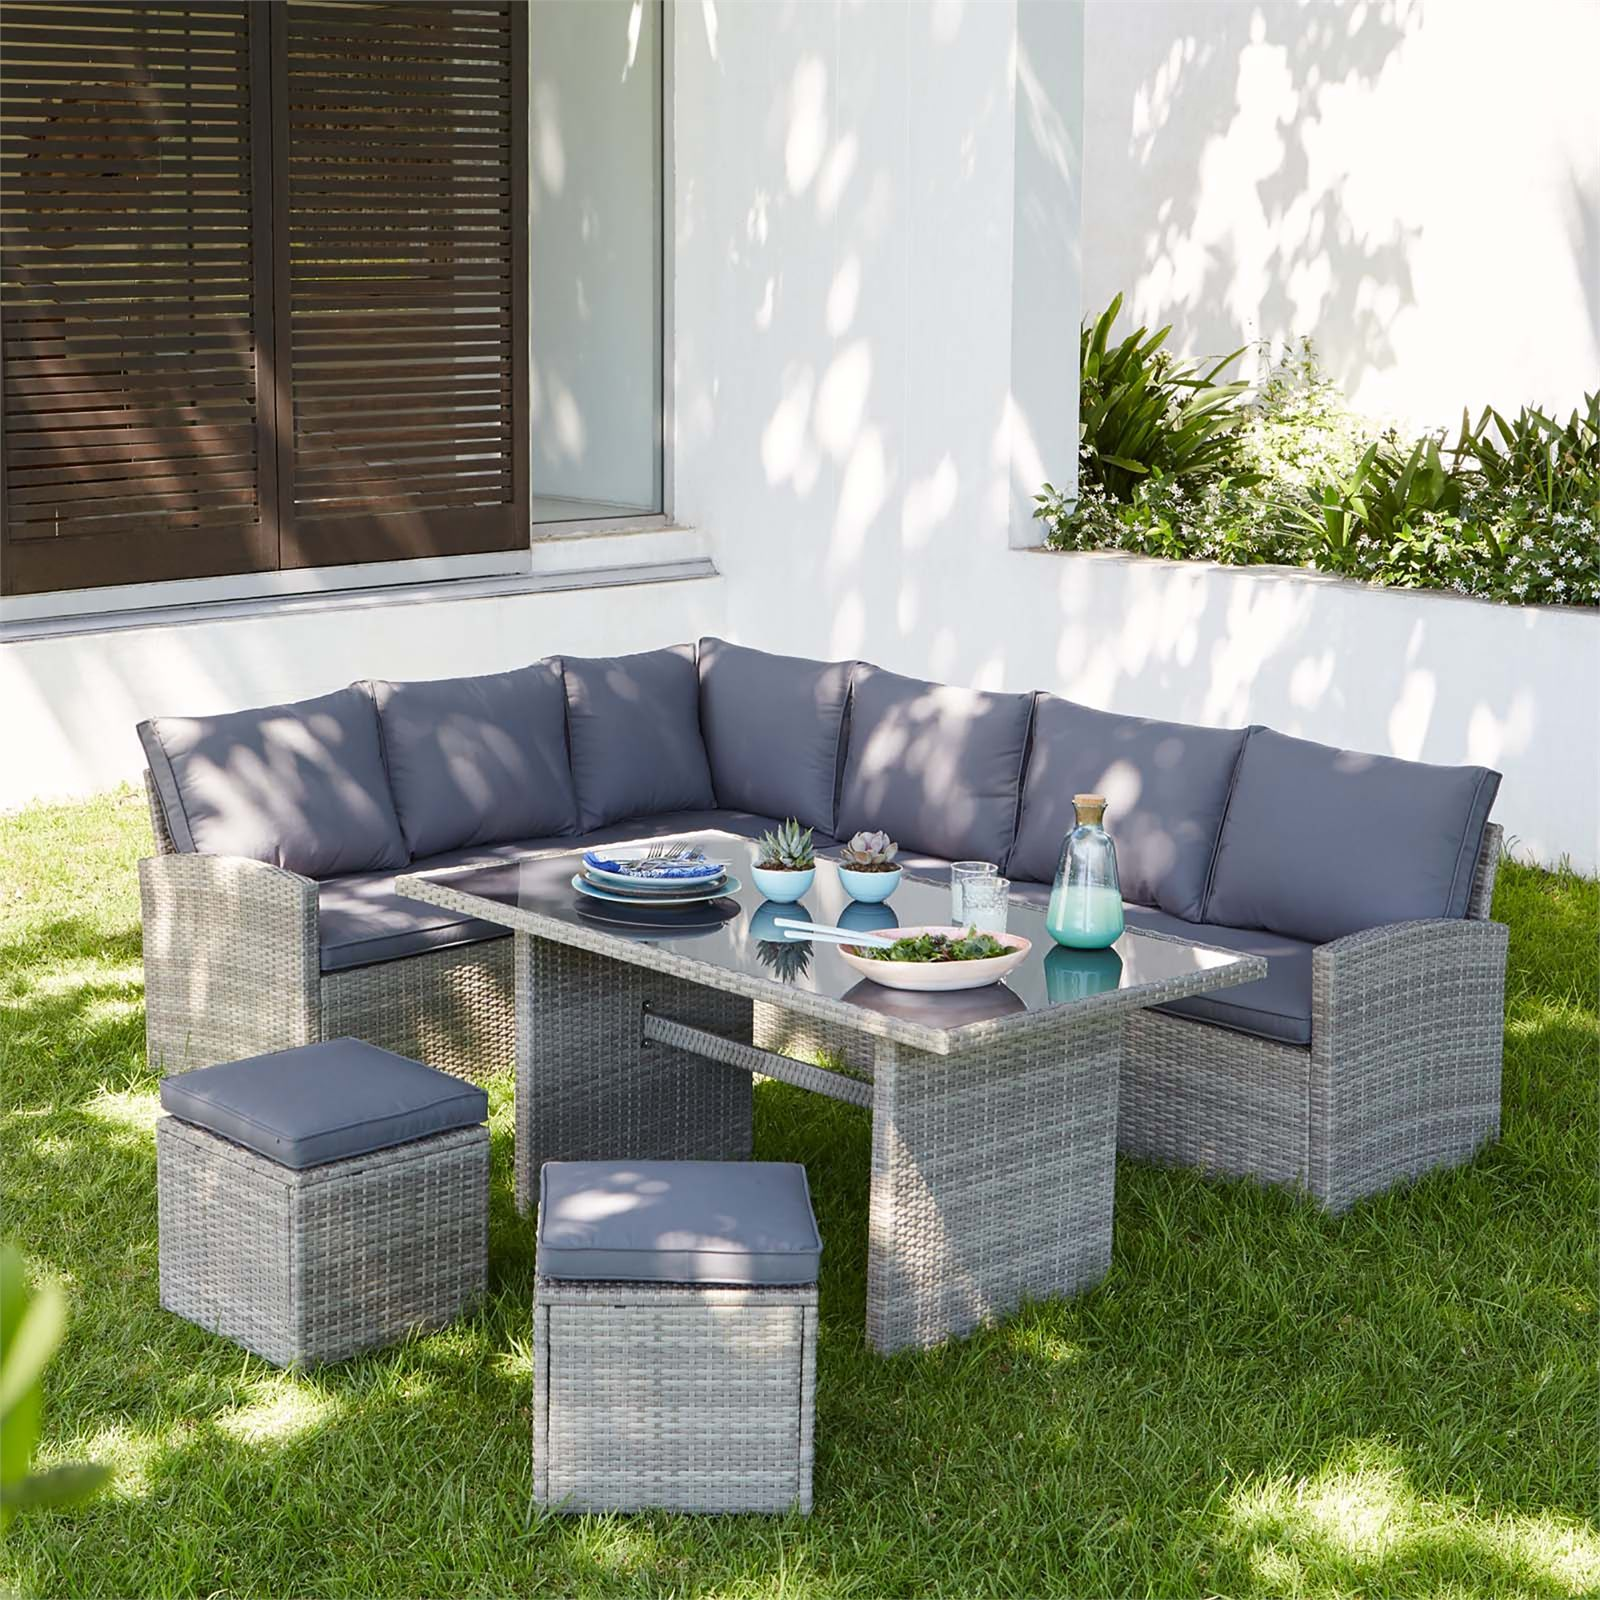 Matara Rattan Corner Sofa Dining Garden Furniture Set in